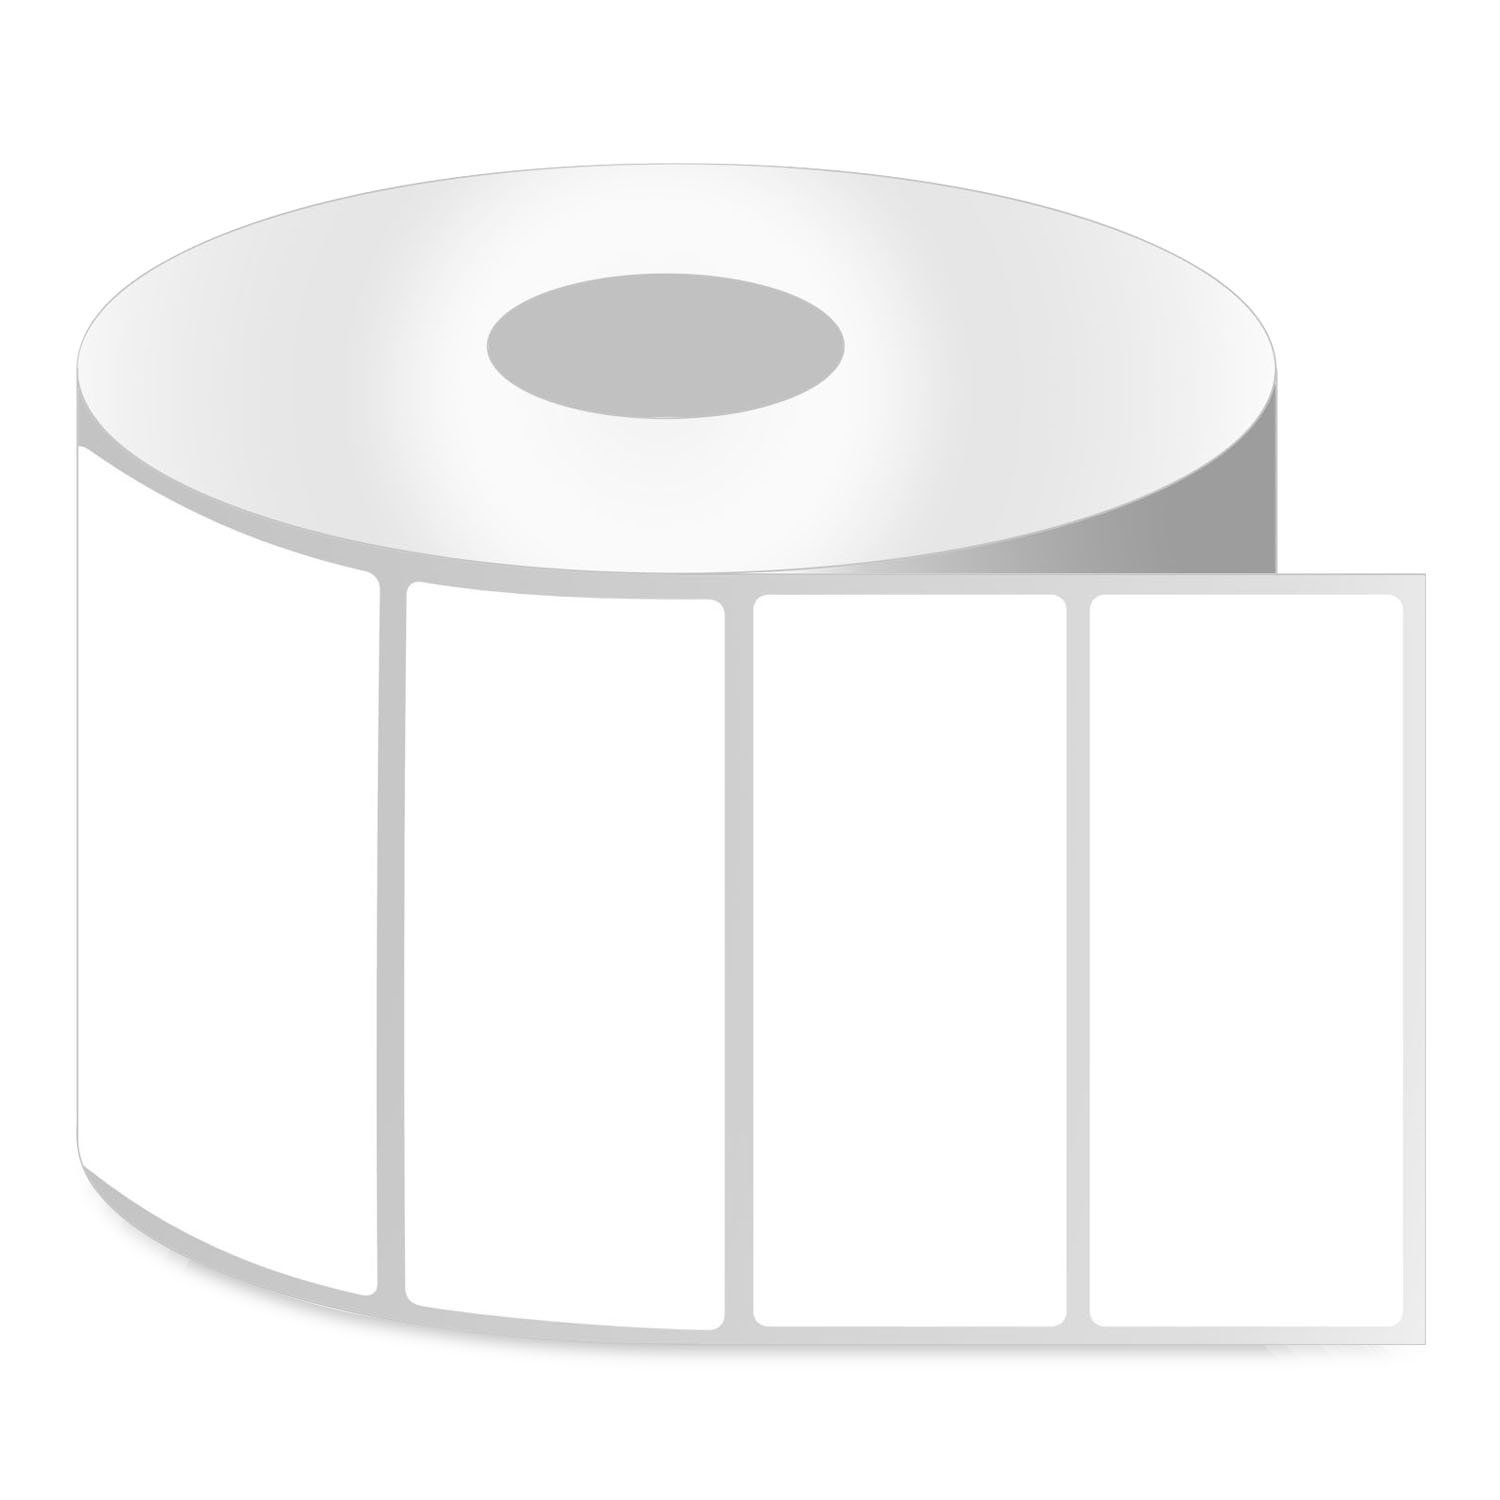 OfficeSmart Labels ZR1400200-4 x 2 Inch Removable Direct Thermal Labels, Compatible with Zebra Printers (20 Rolls, White, 750 Labels Per Roll, 1 inch Core)